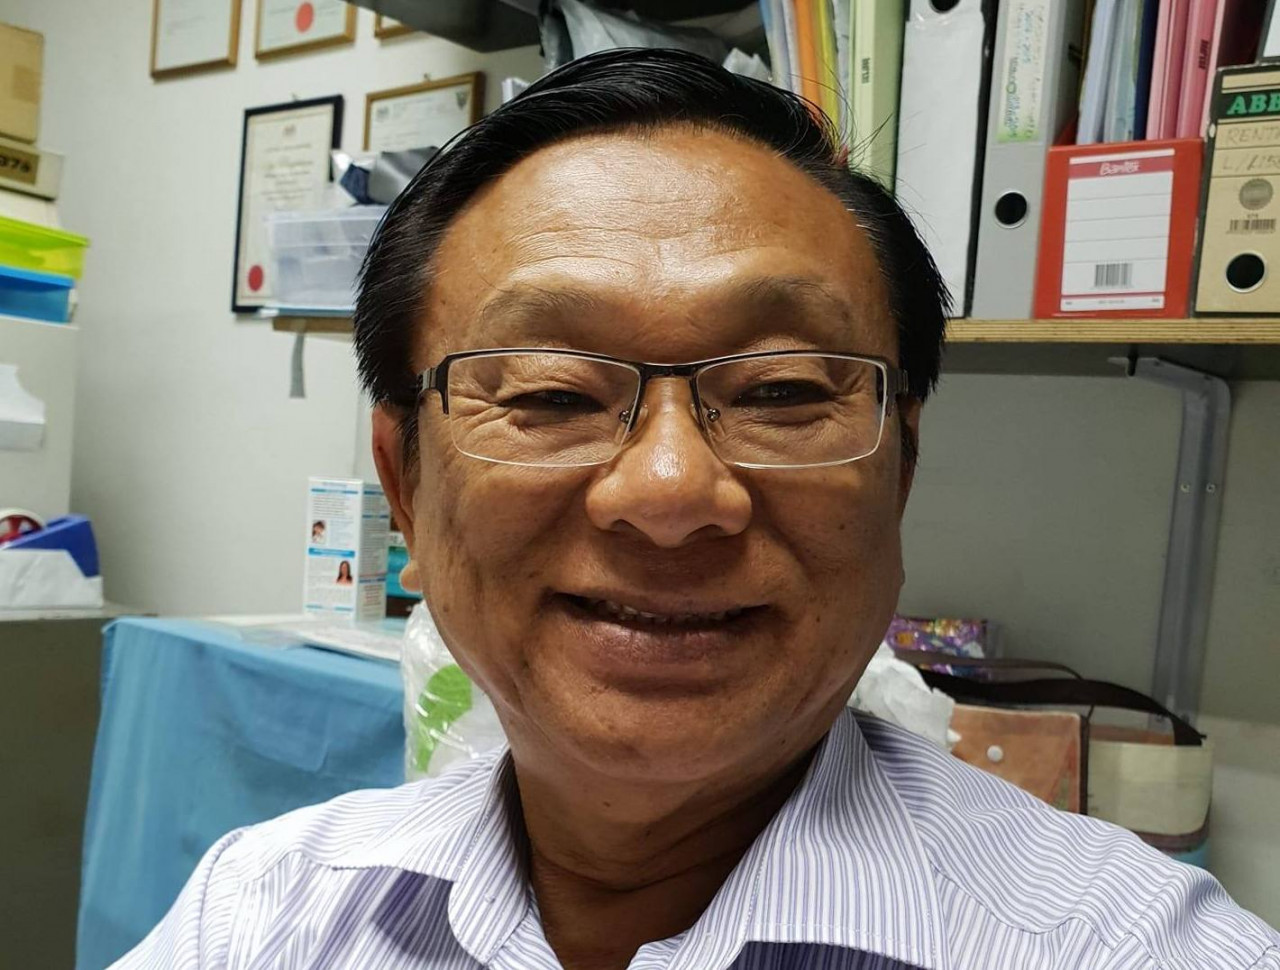 Miri MP Dr Michael Teo says his clinic is willing to play a part in ivermectin trials if Sarawak authorities allow them to be carried out. – Facebook pic, August 14, 2021